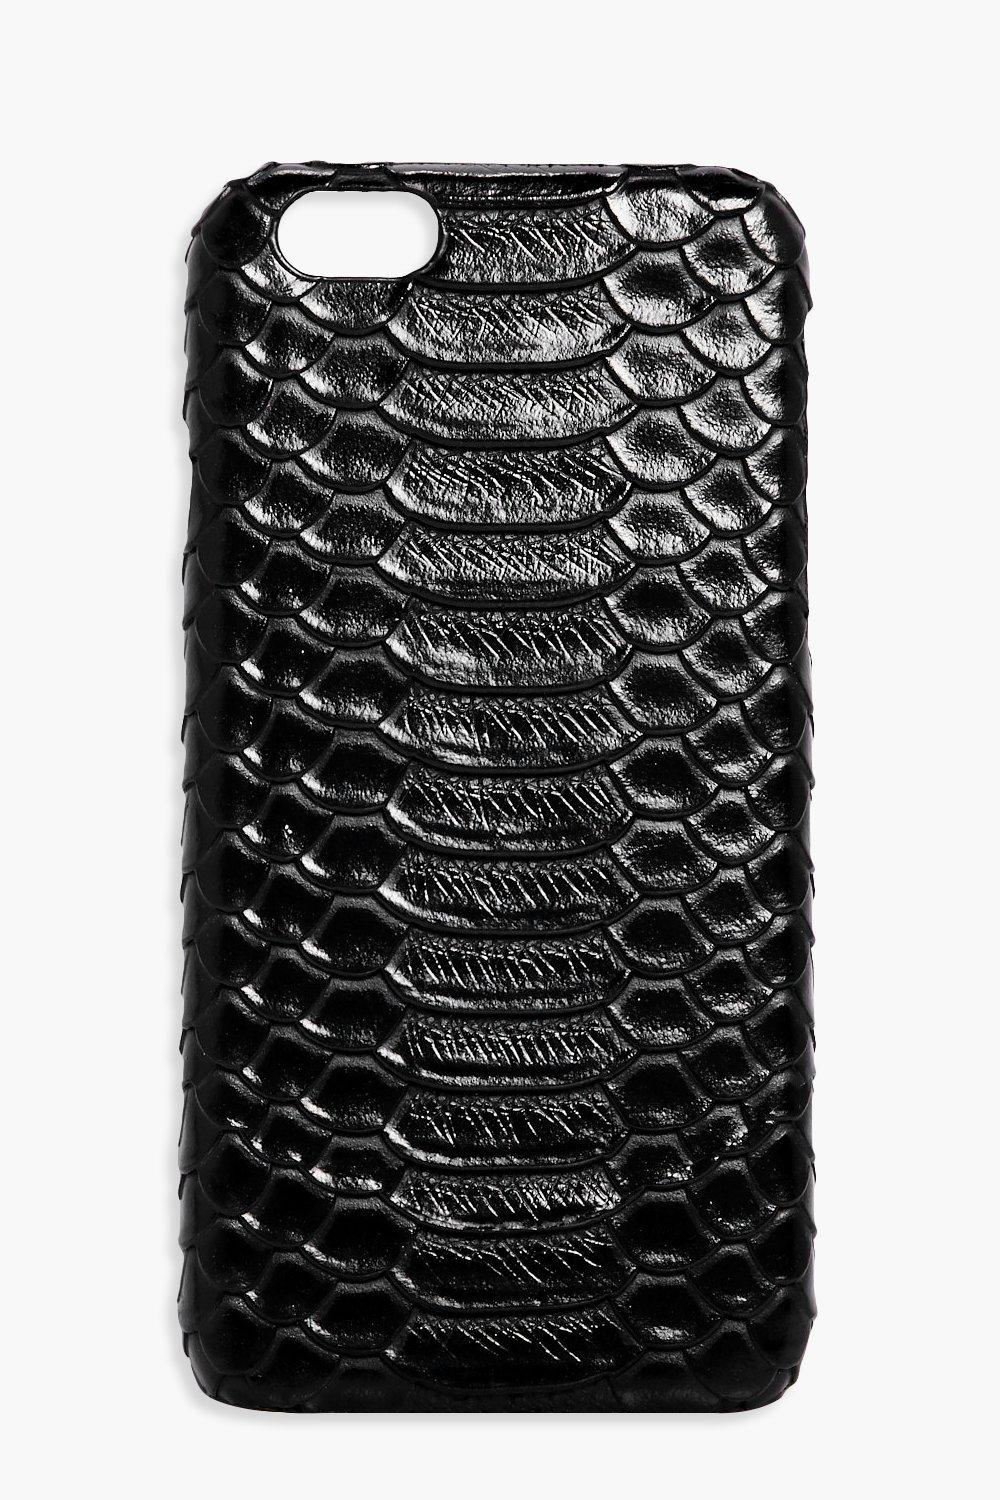 Croc Texture iPhone 6 Case - black - Mock Croc Tex